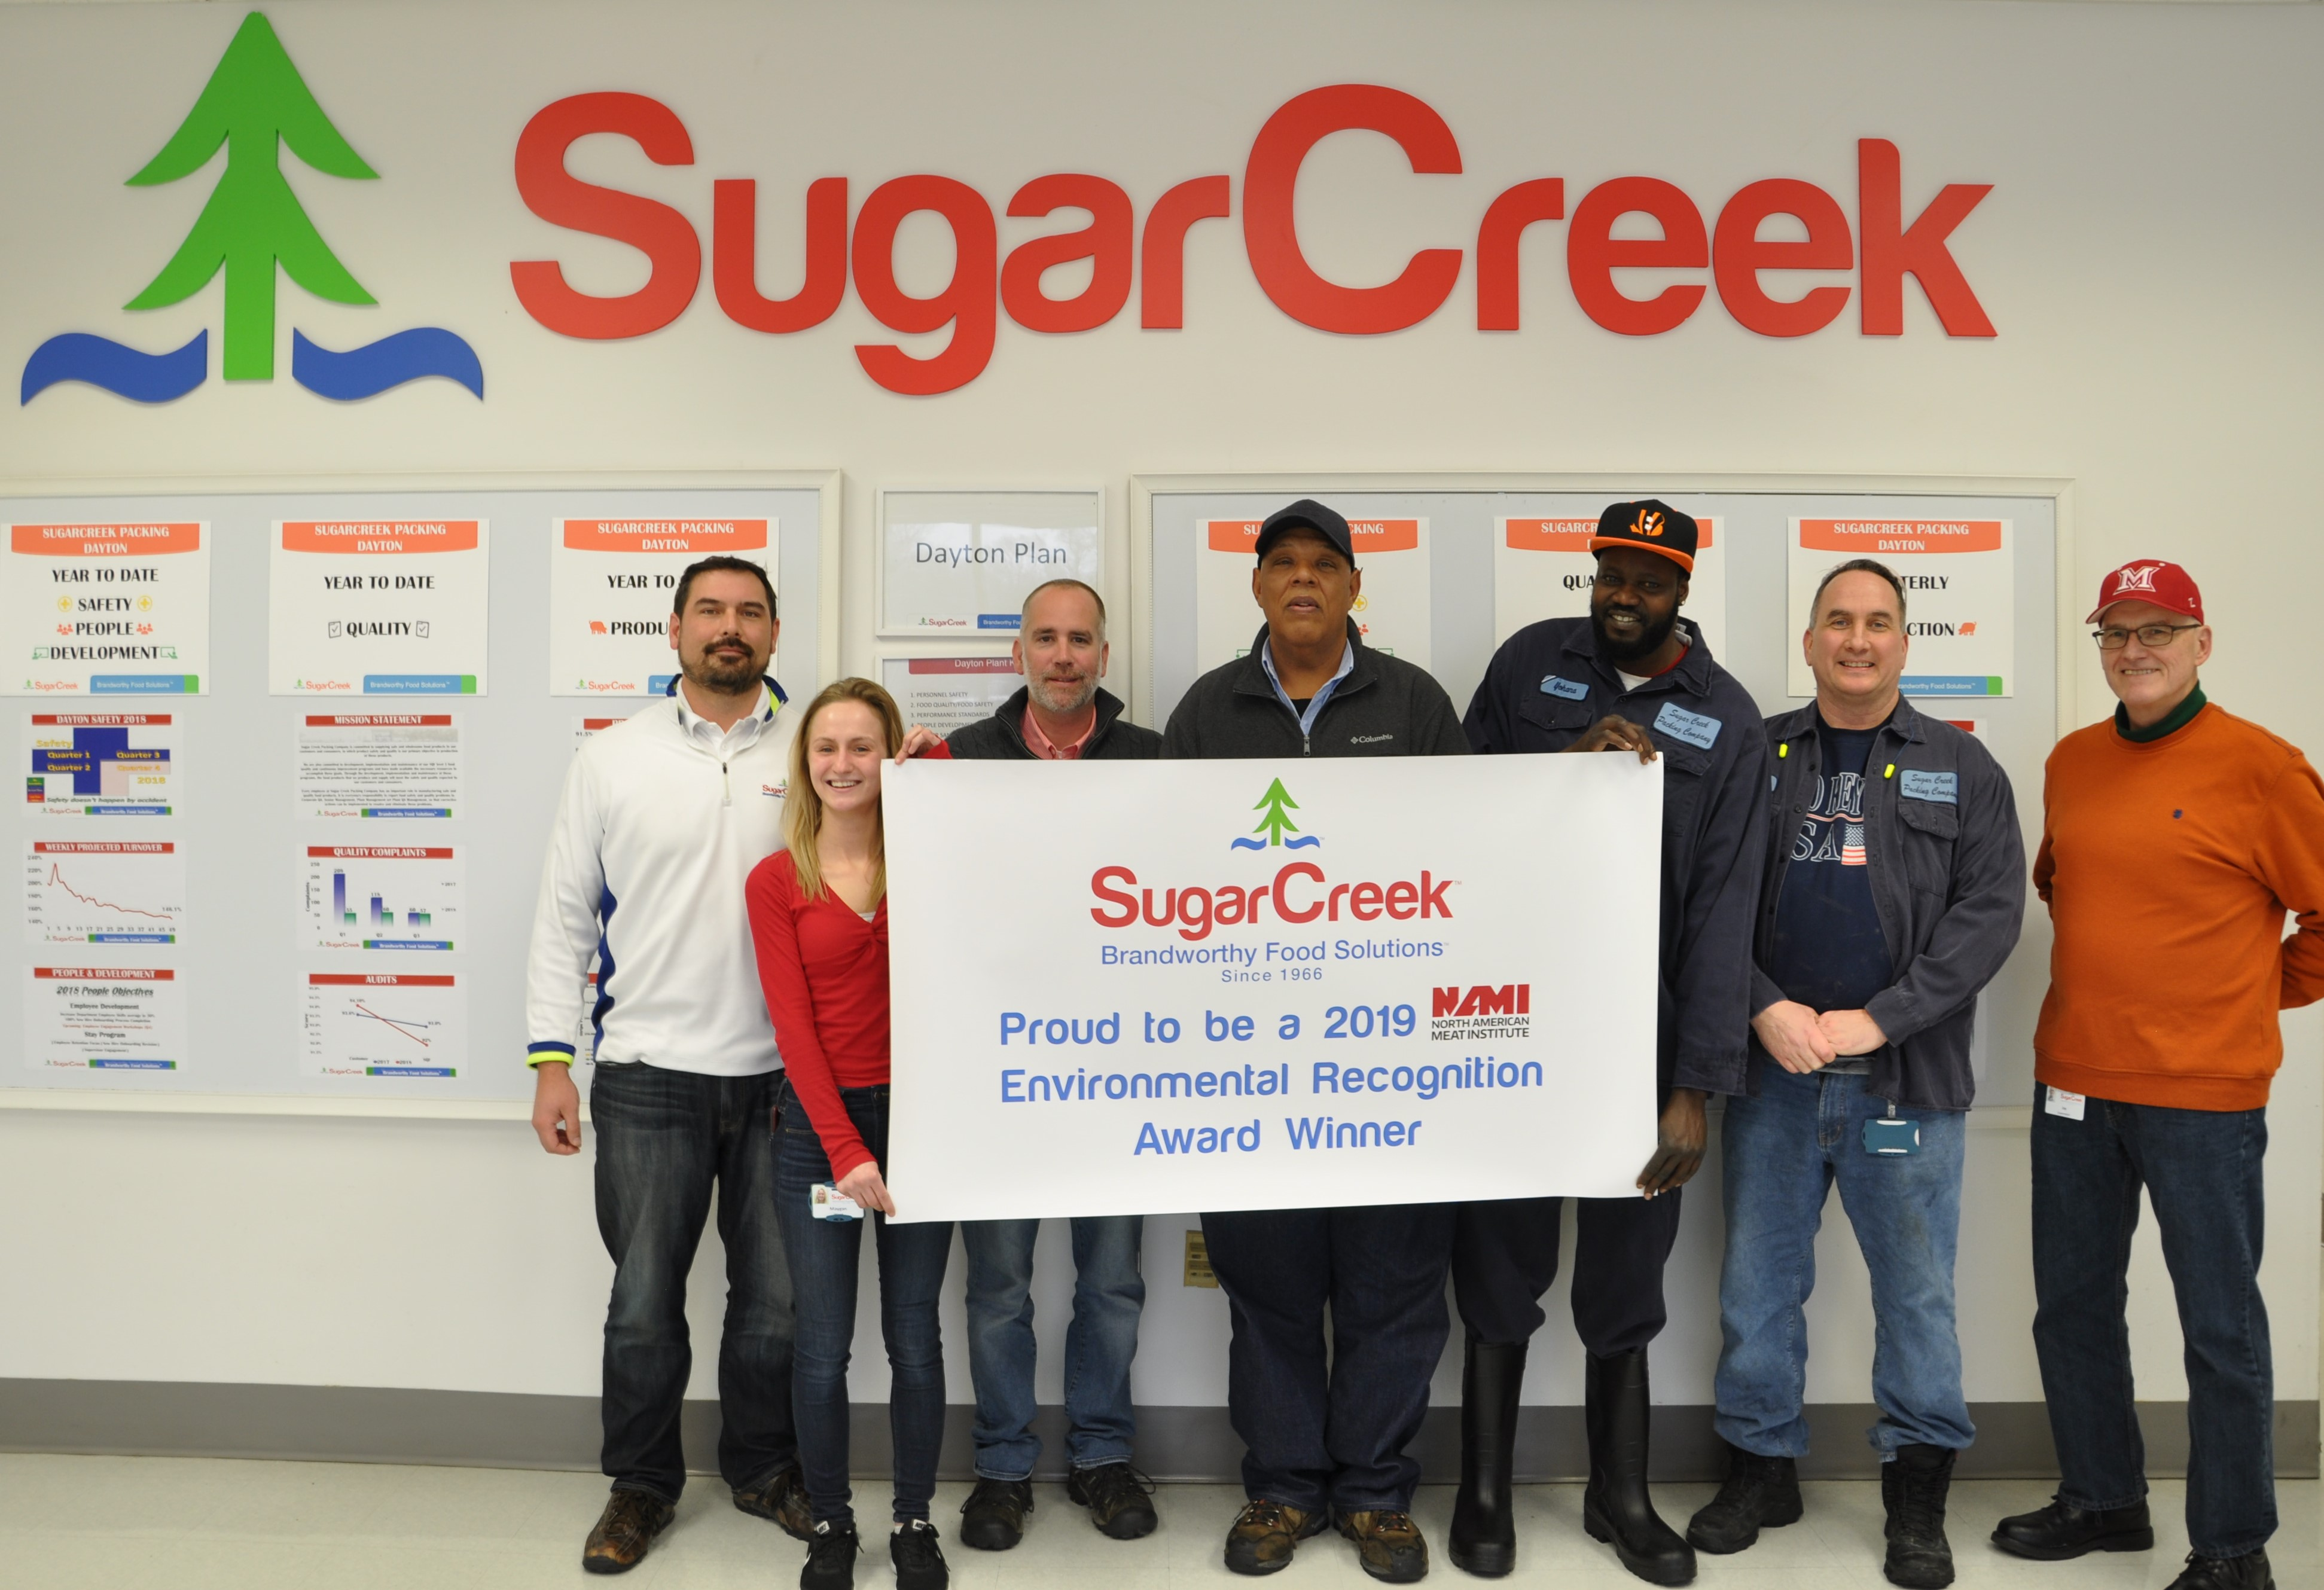 SugarCreek Recognized at 2019 NAMI Awards for Environmental, Health and Safety Achievements